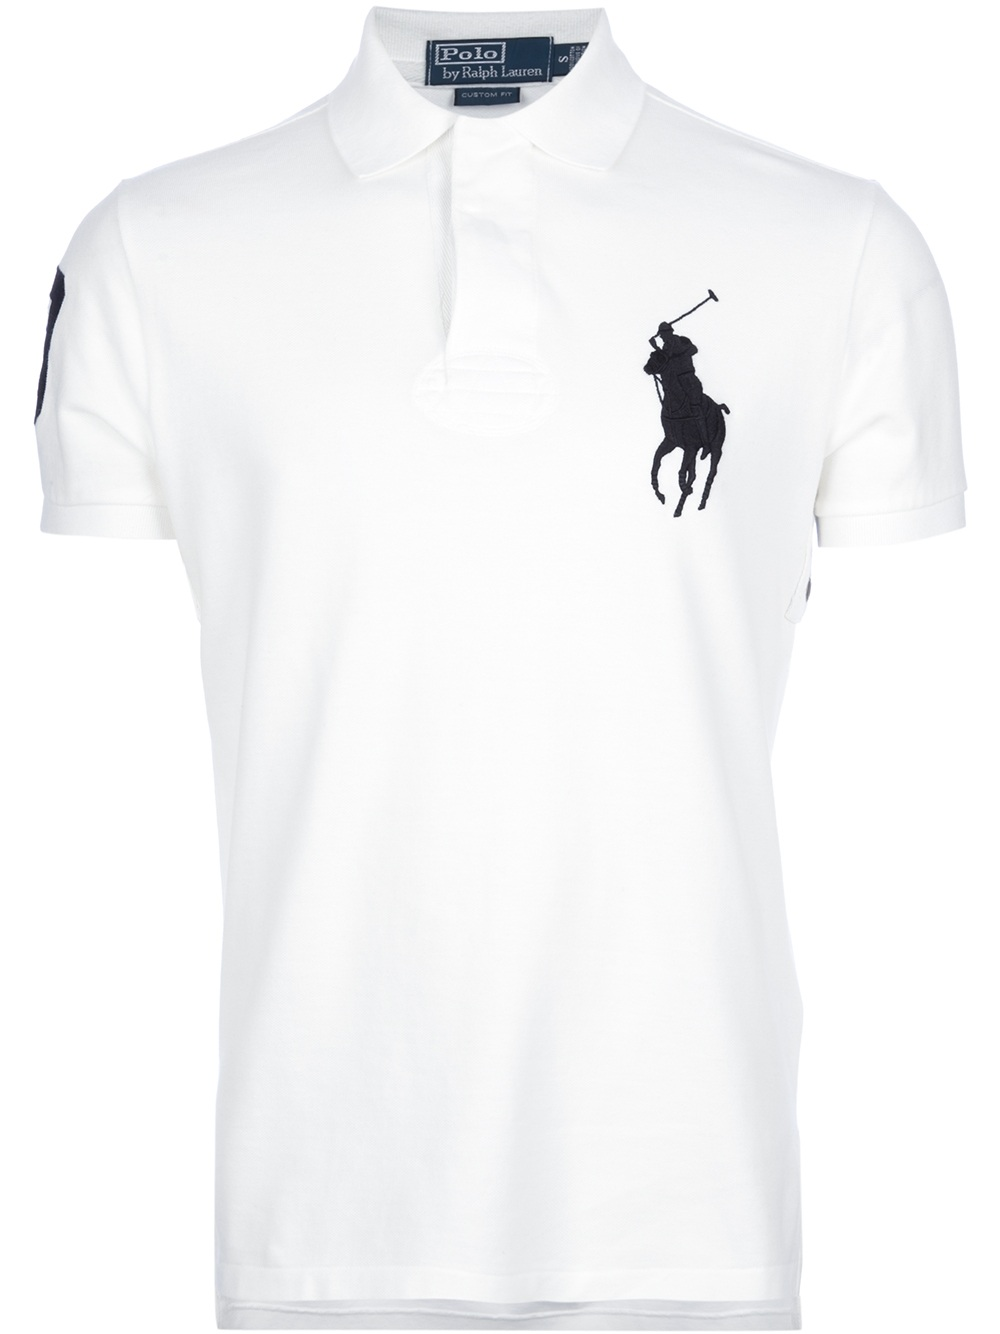 Polo ralph lauren fitted logo polo shirt in white for men for White fitted polo shirts